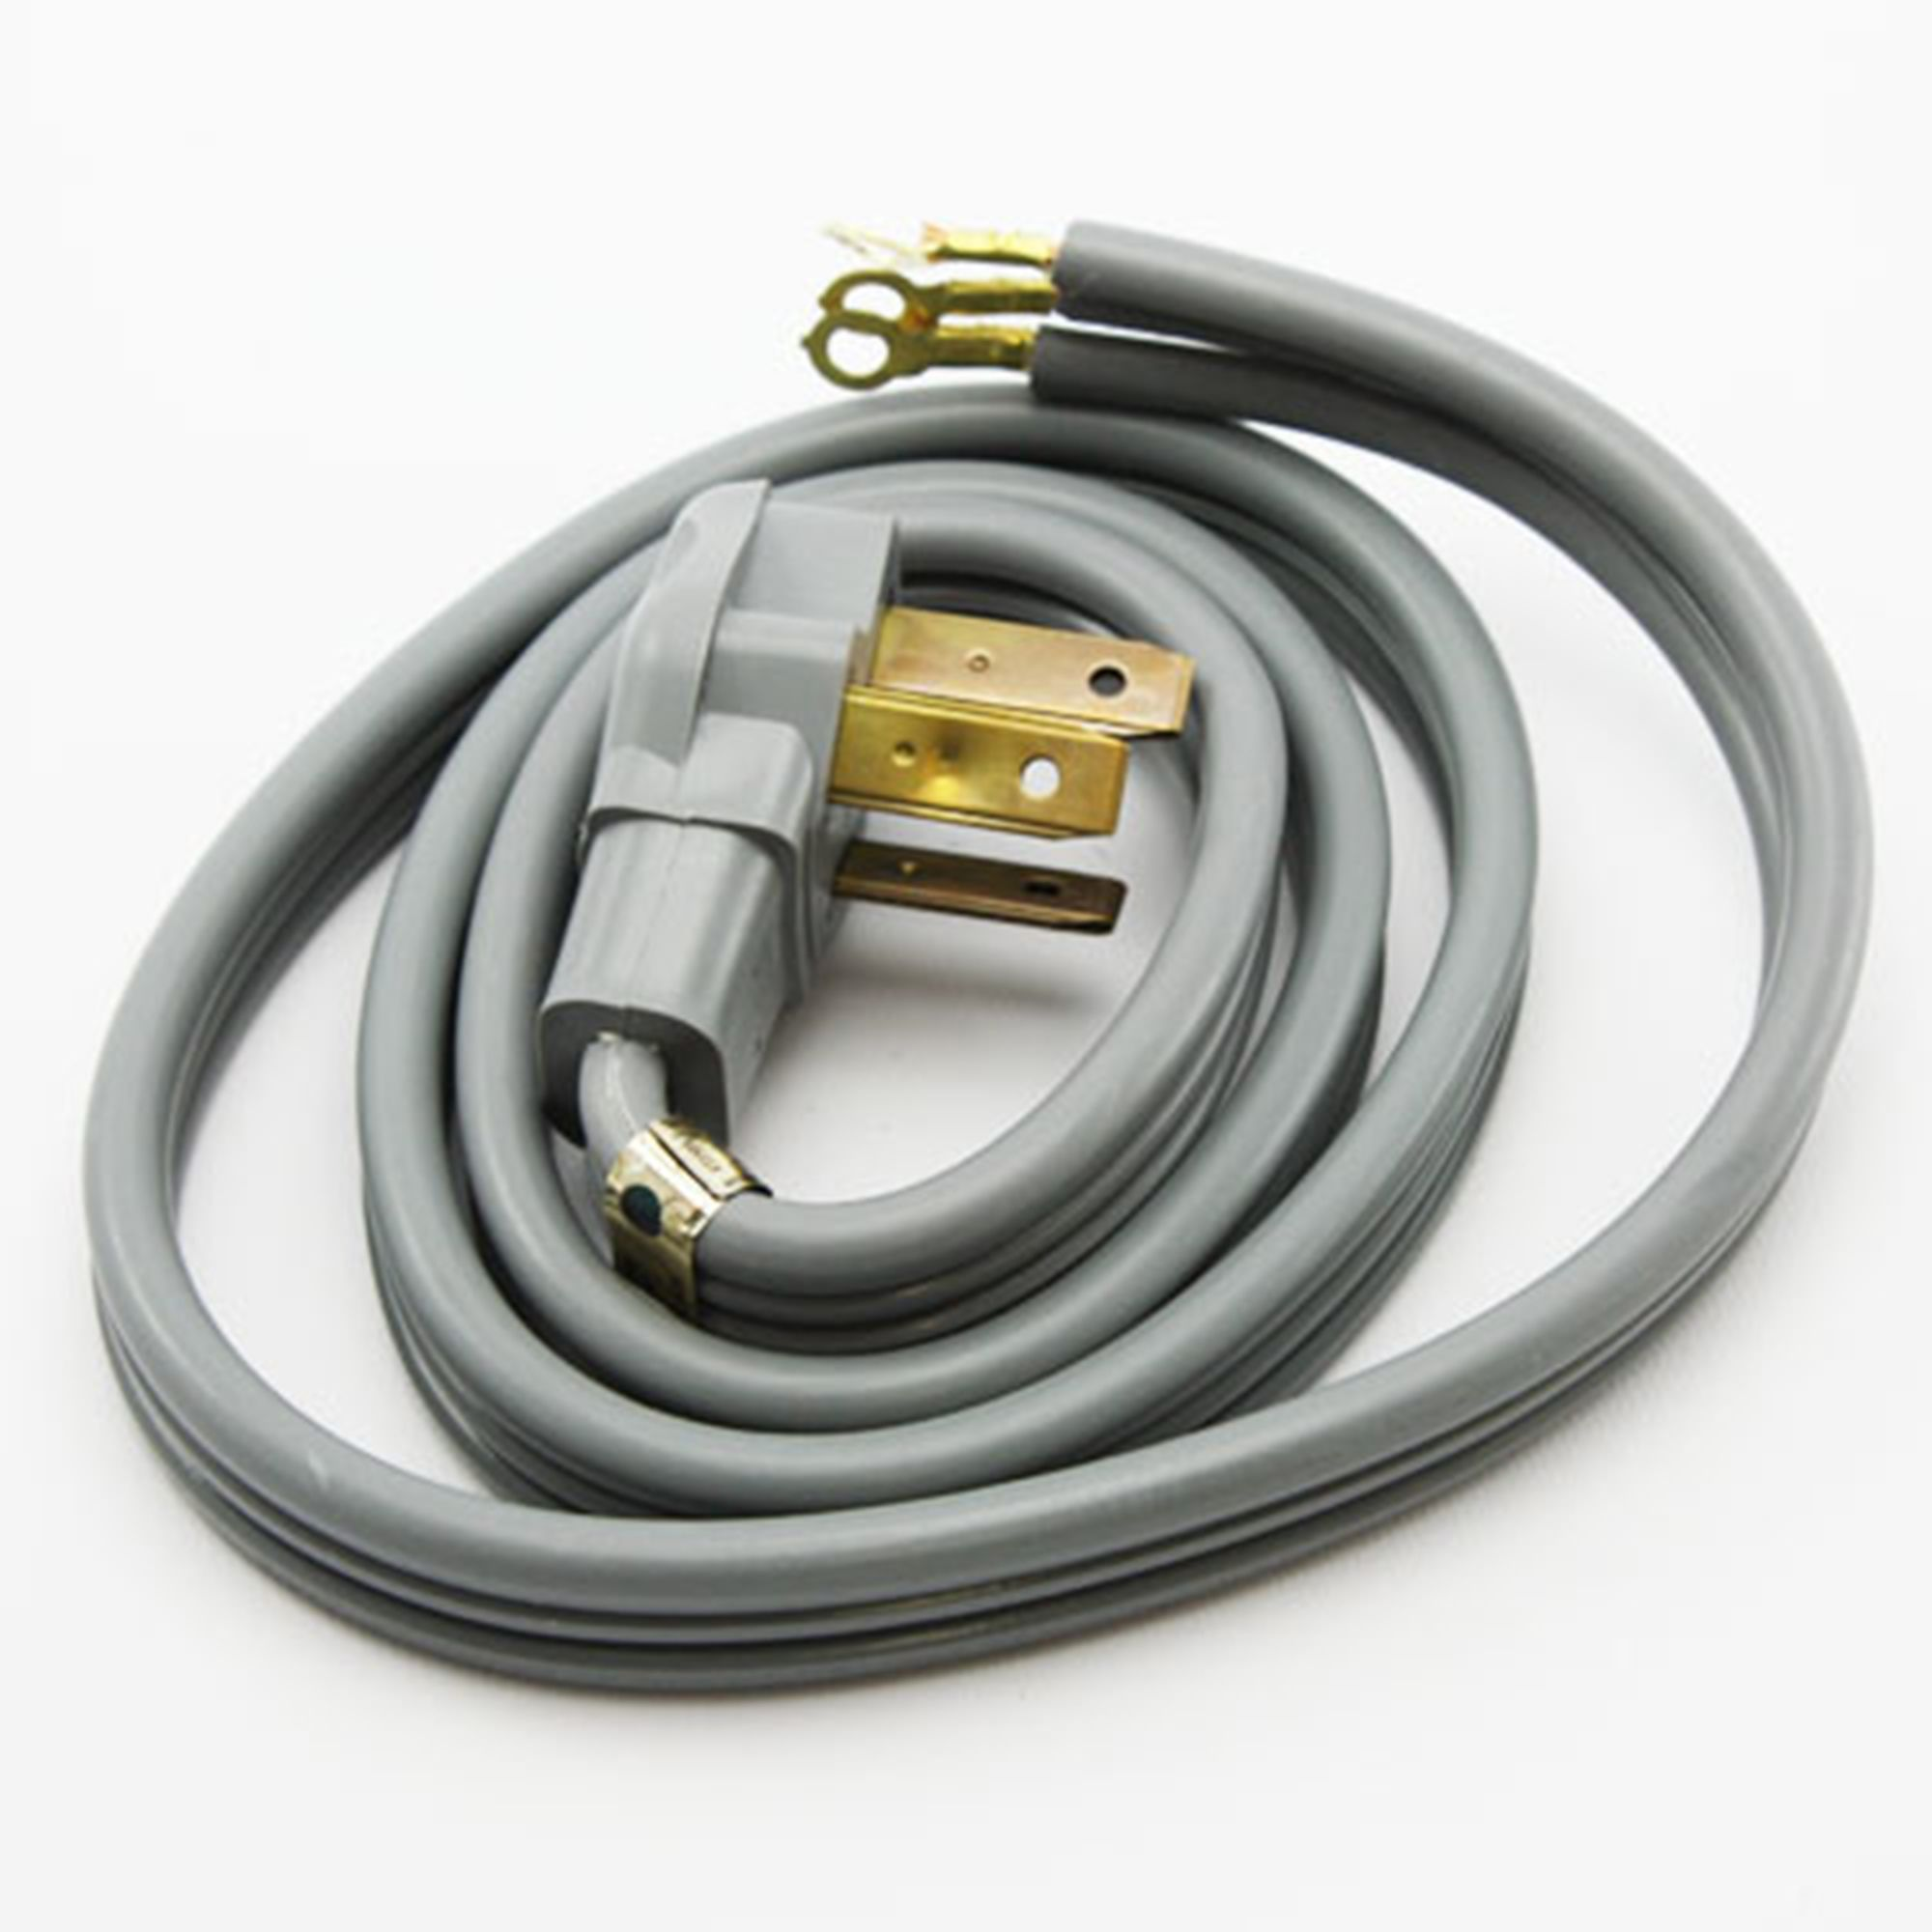 Range Stove Oven Power Cord 3 Wire 5 Long 40A 220V